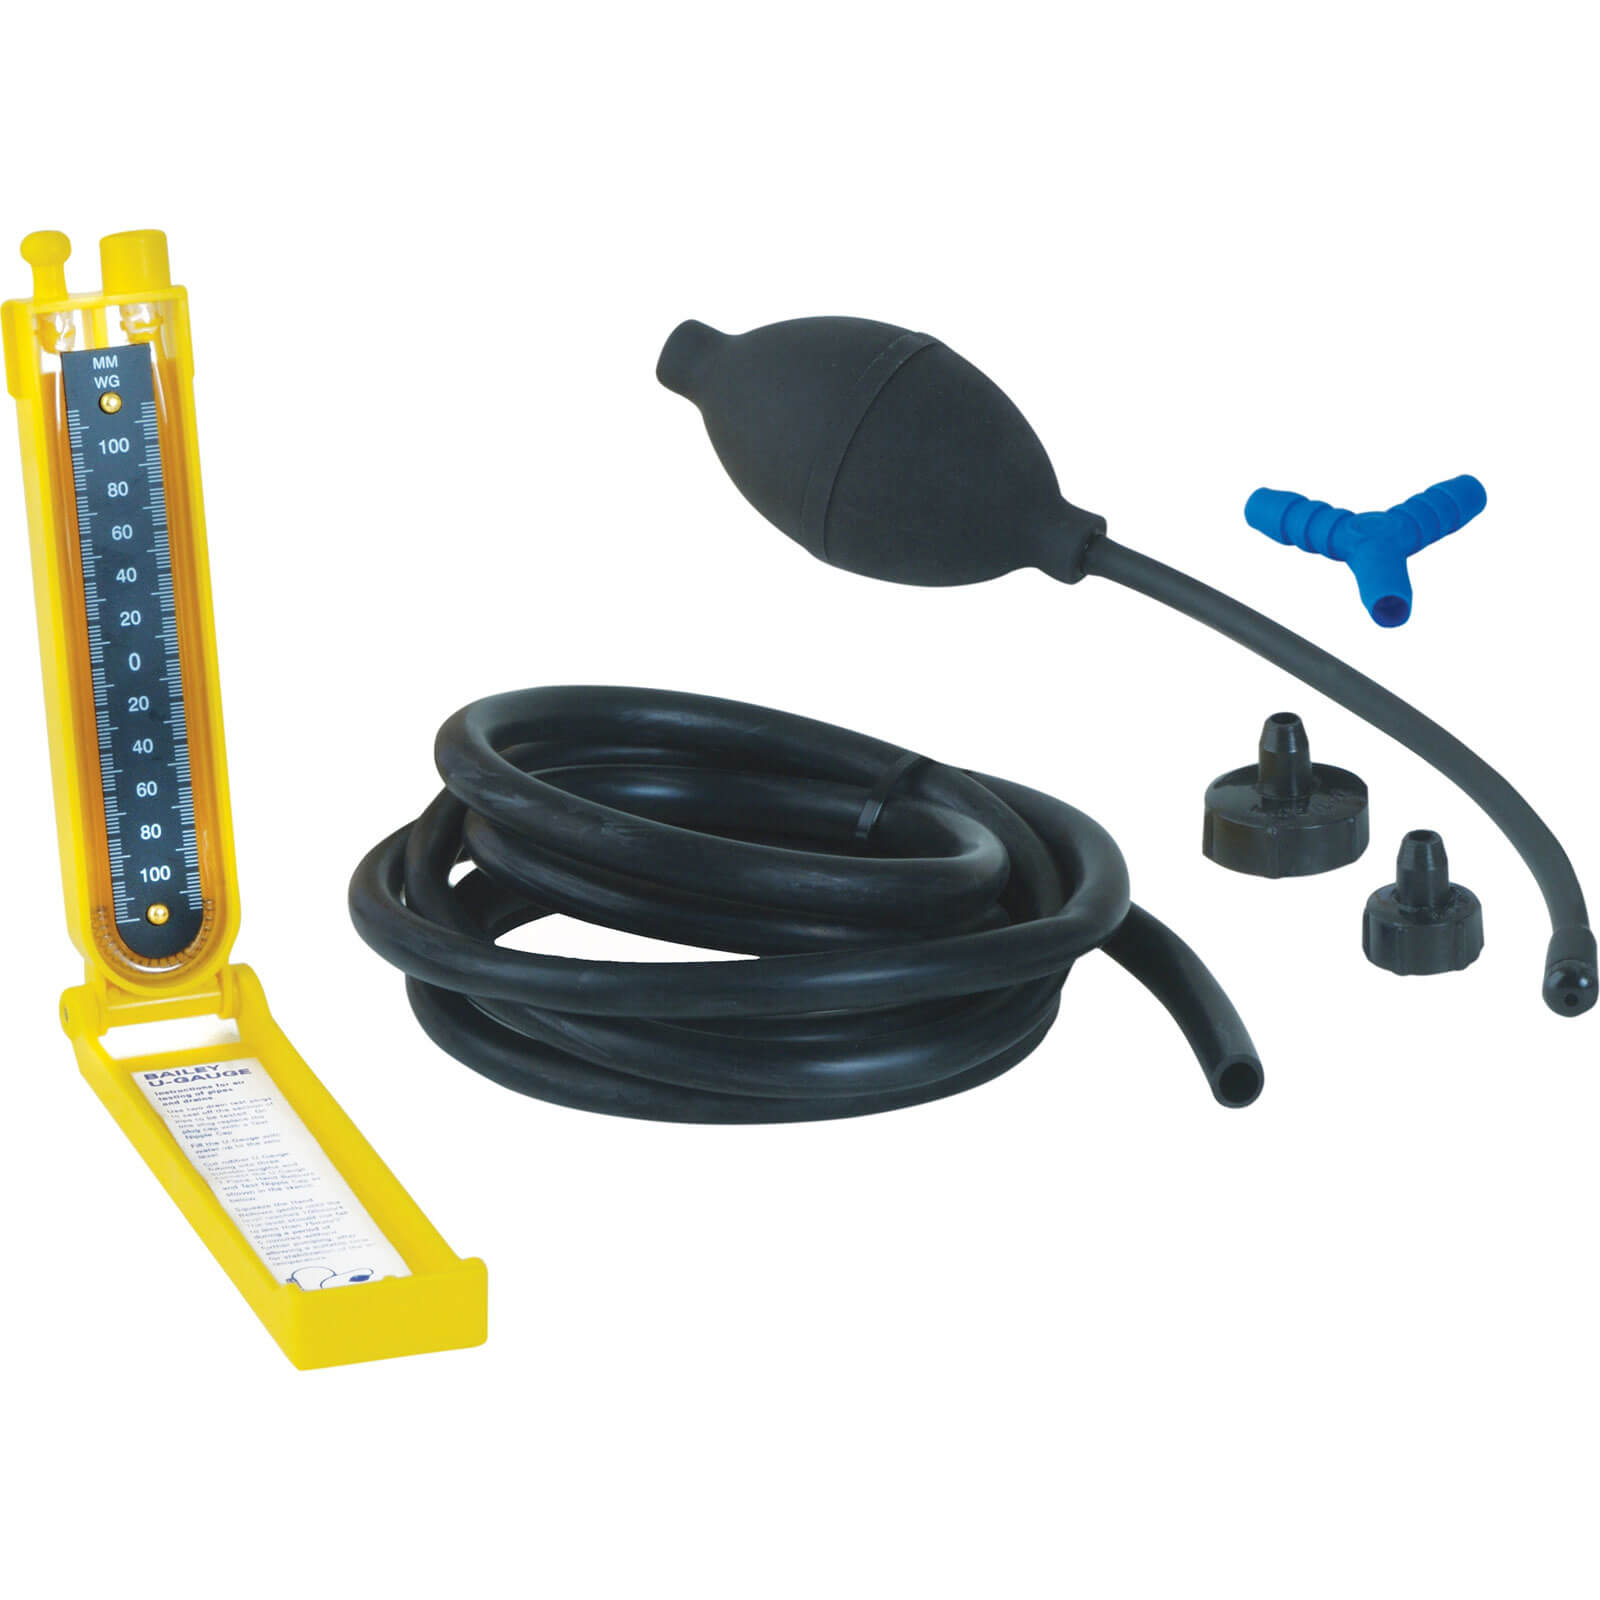 Image of Bailey 4074 Complete Drain Test Kit